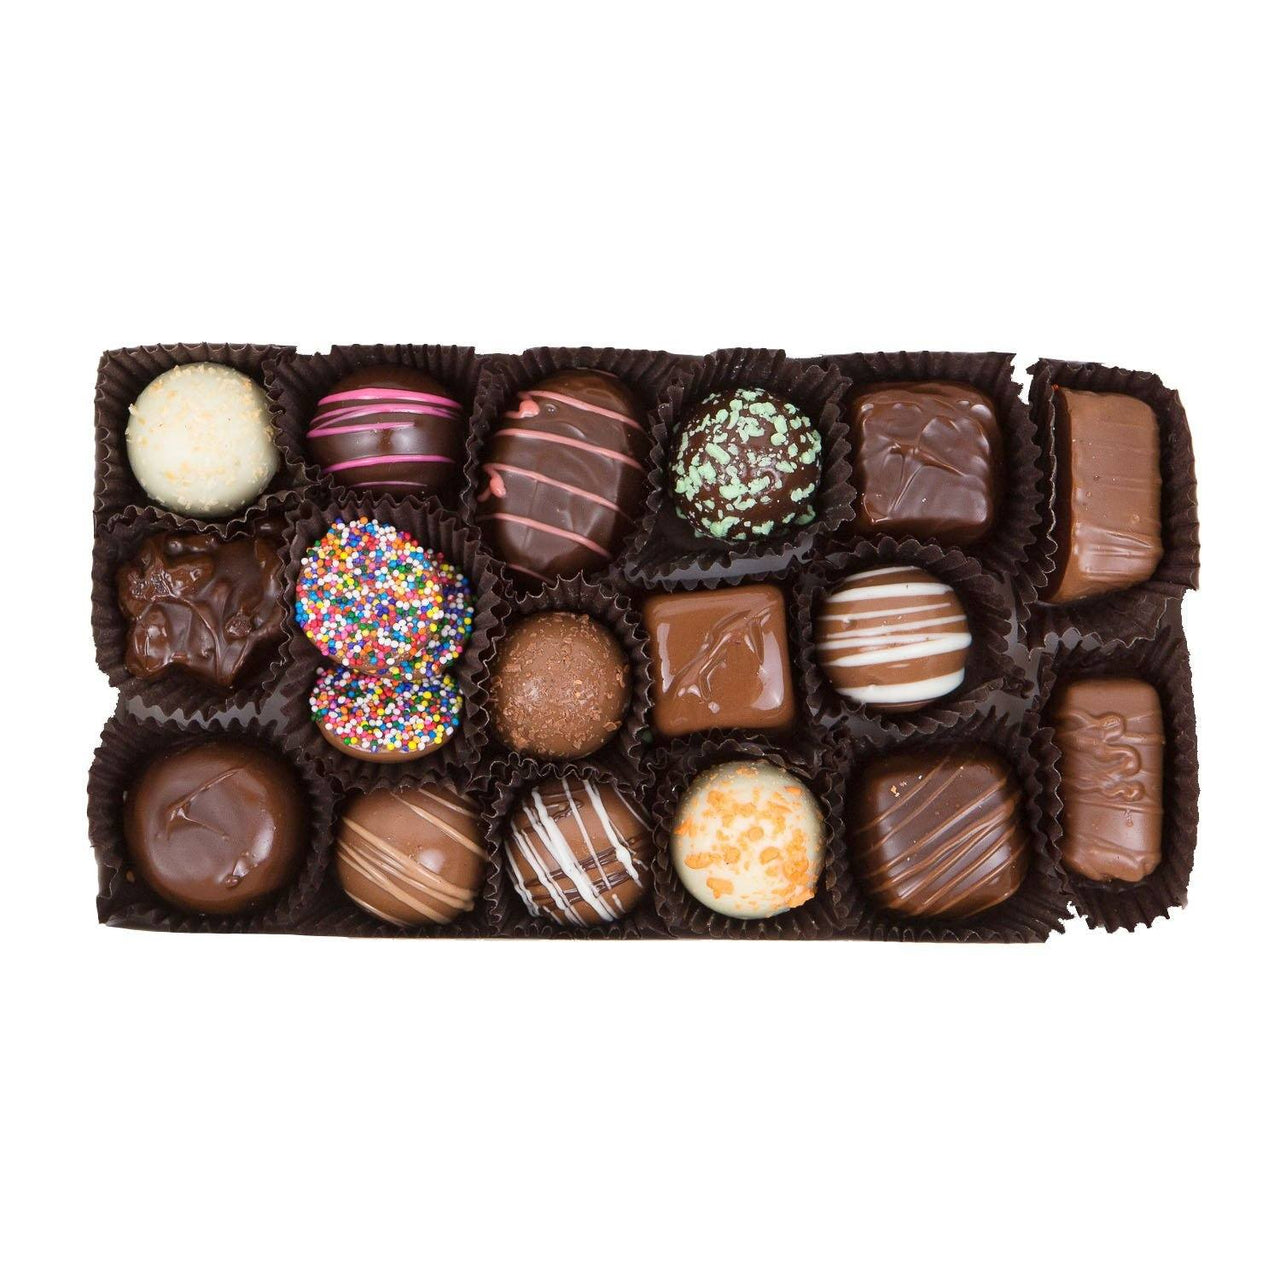 Xmas Gifts for Wife  - Chocolate Assortment Gift Box - Jackie's Chocolate (4336370221171)